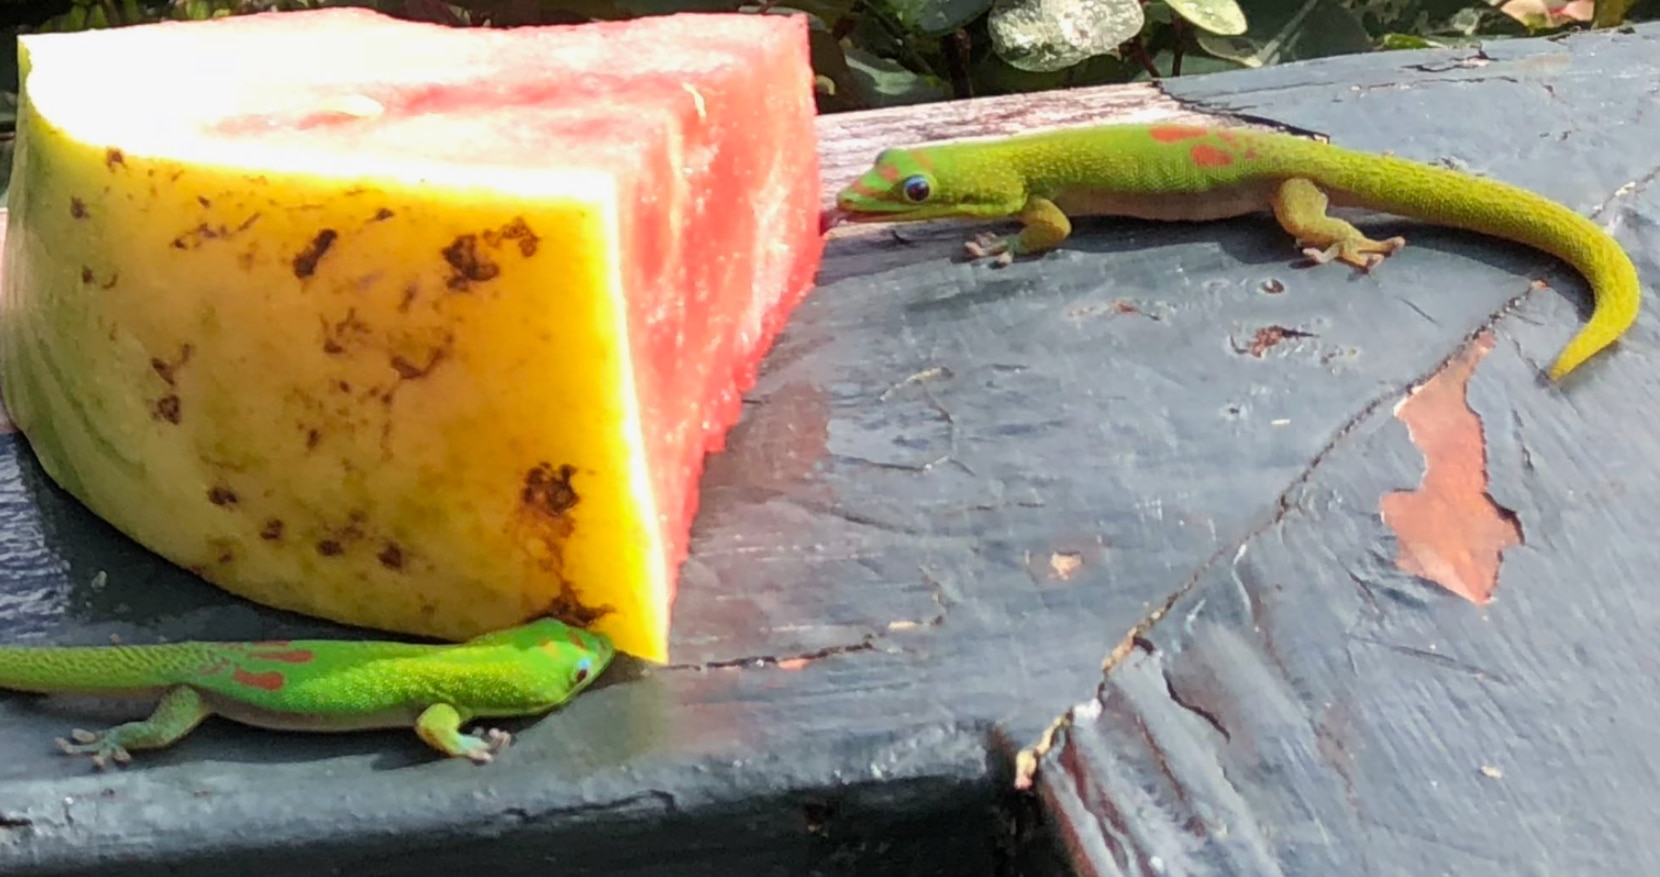 Gold Dust Geckos enjoy licking the dew from this slice of watermelon.